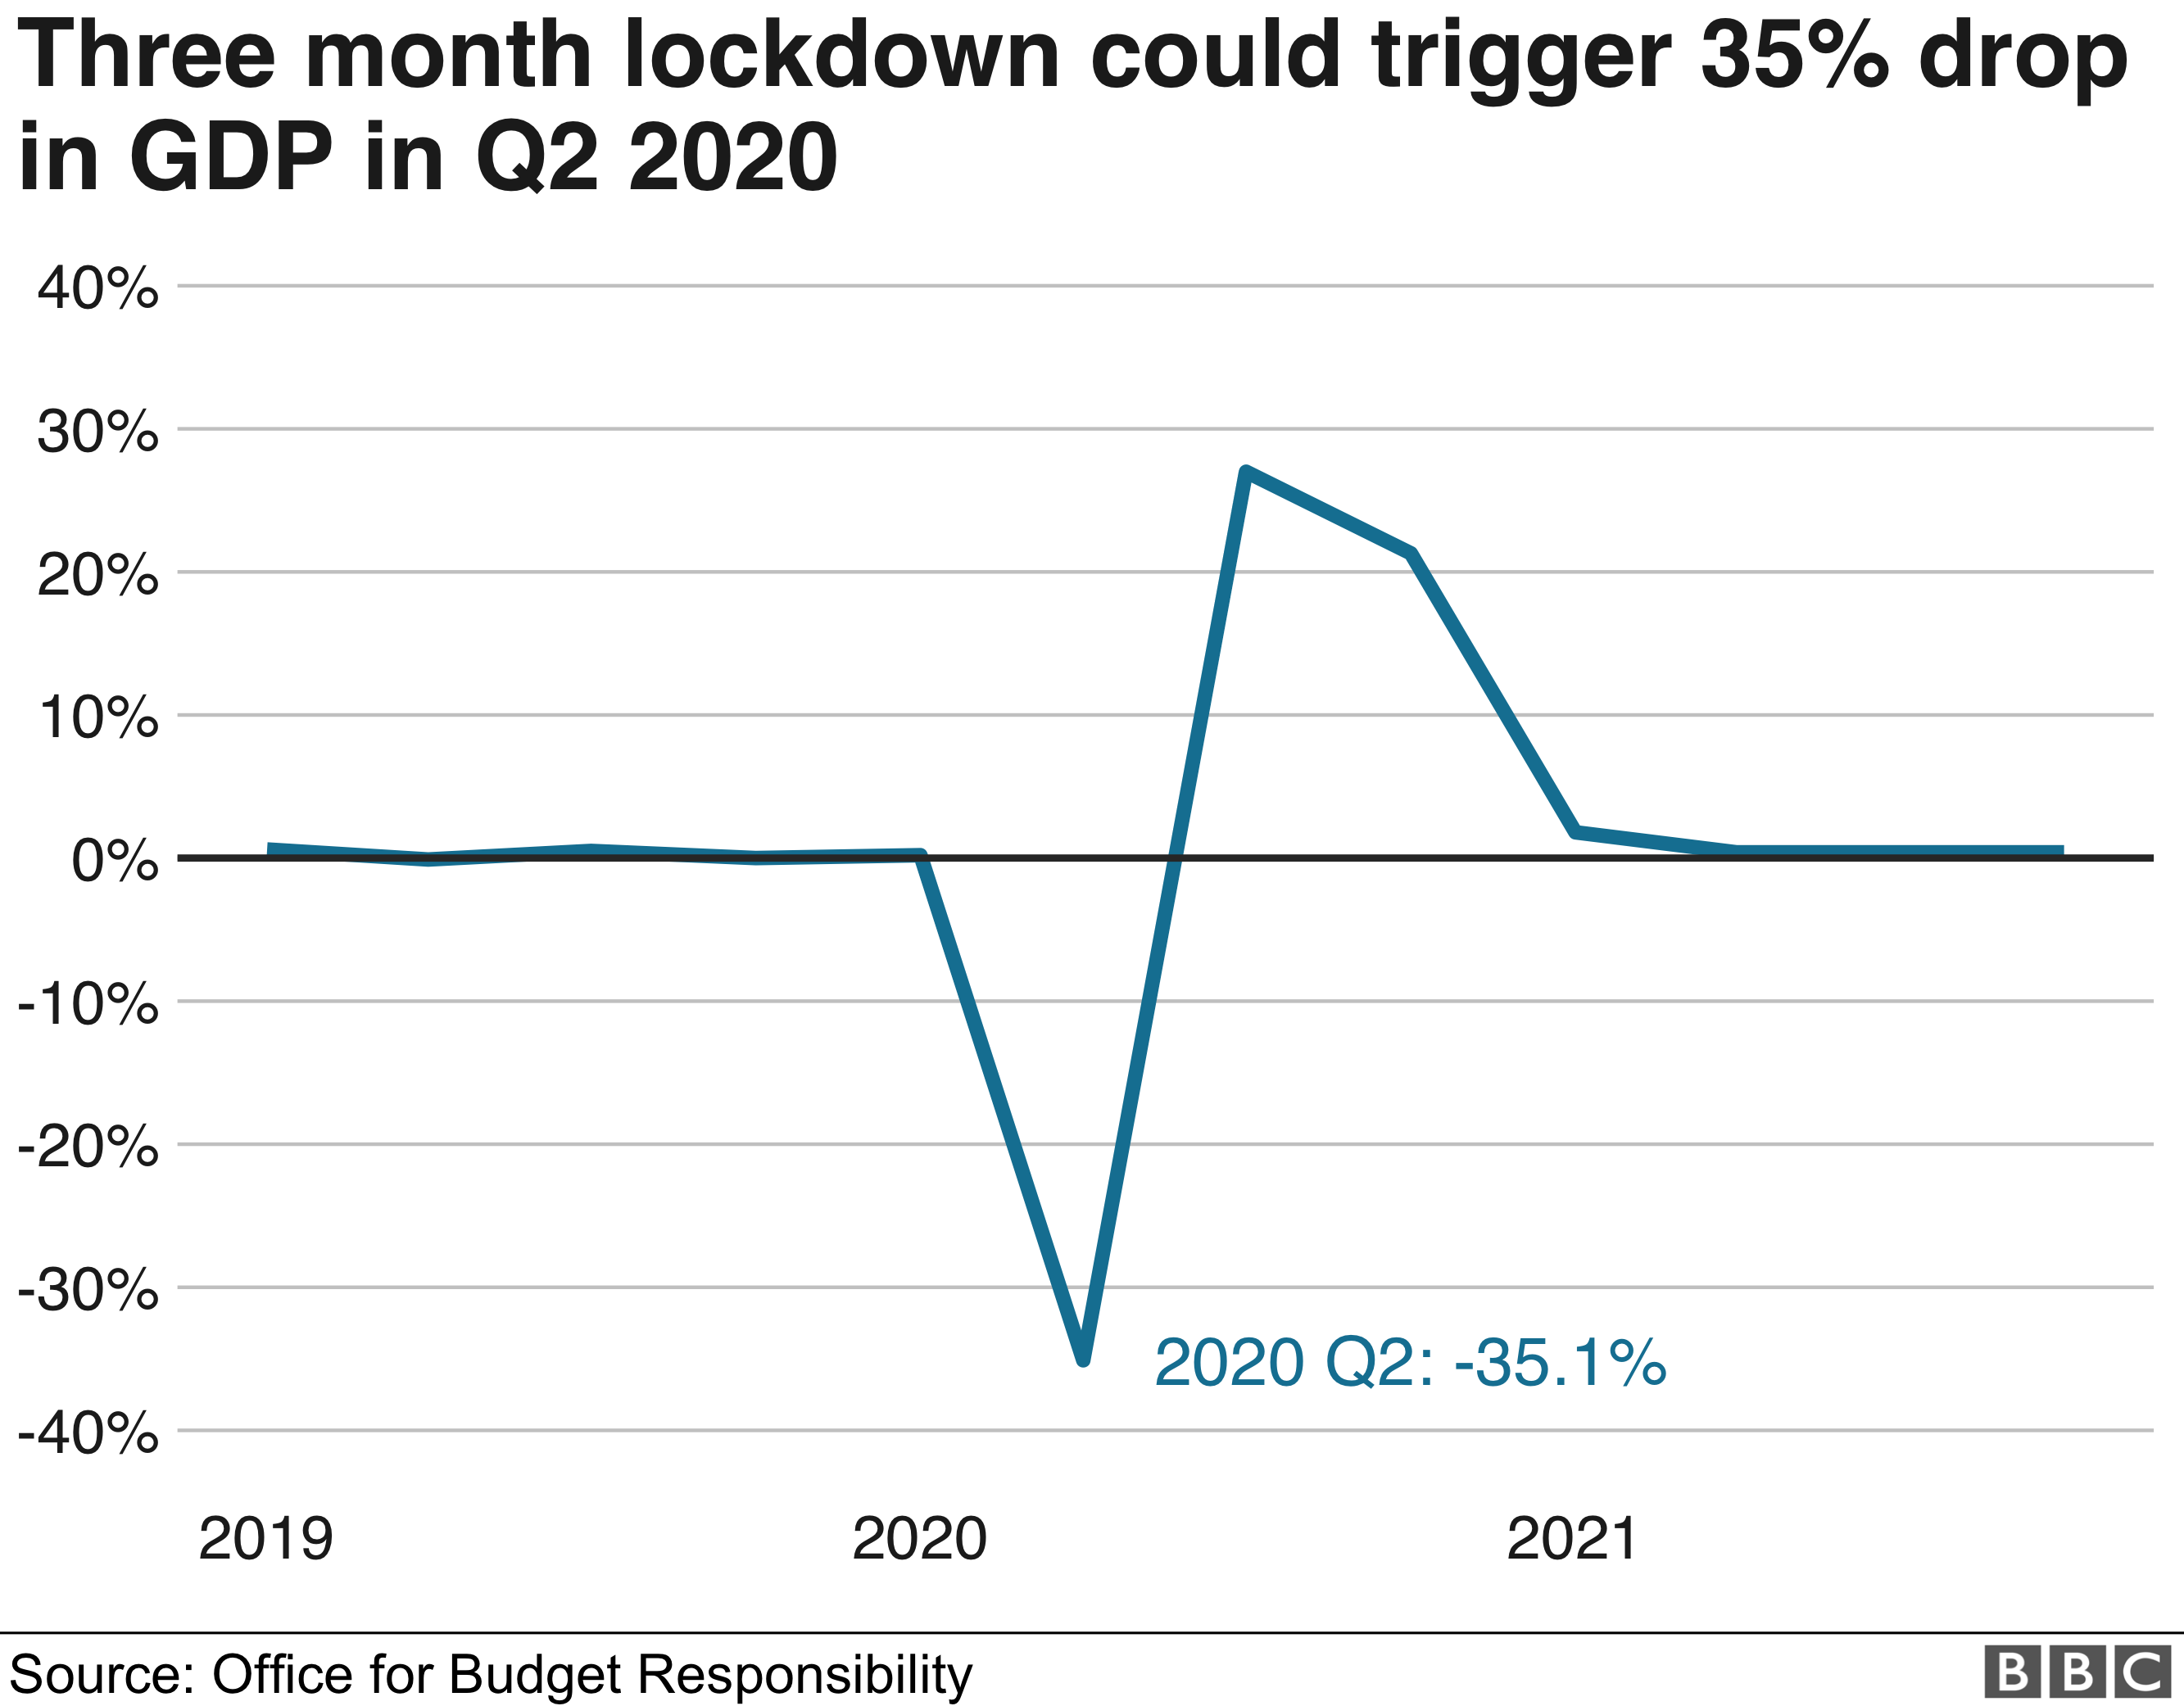 Three month lockdown could trigger 35% drop in GDP in 2020 graphic